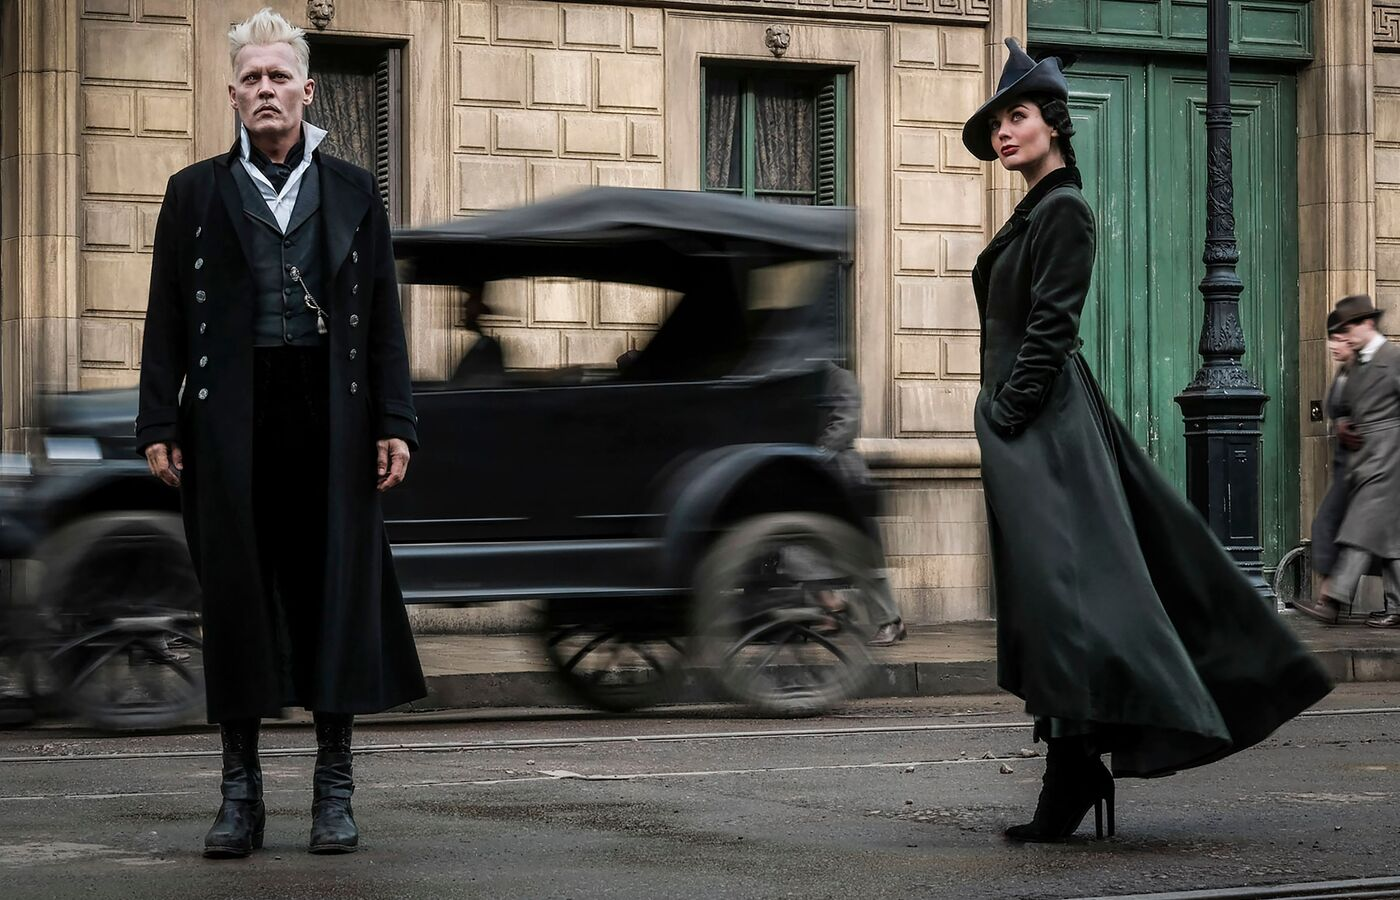 johnny-depp-and-poppy-corby-tuech-in-fantastic-beasts-2-the-crimes-of-grindelwald-2018-of.jpg